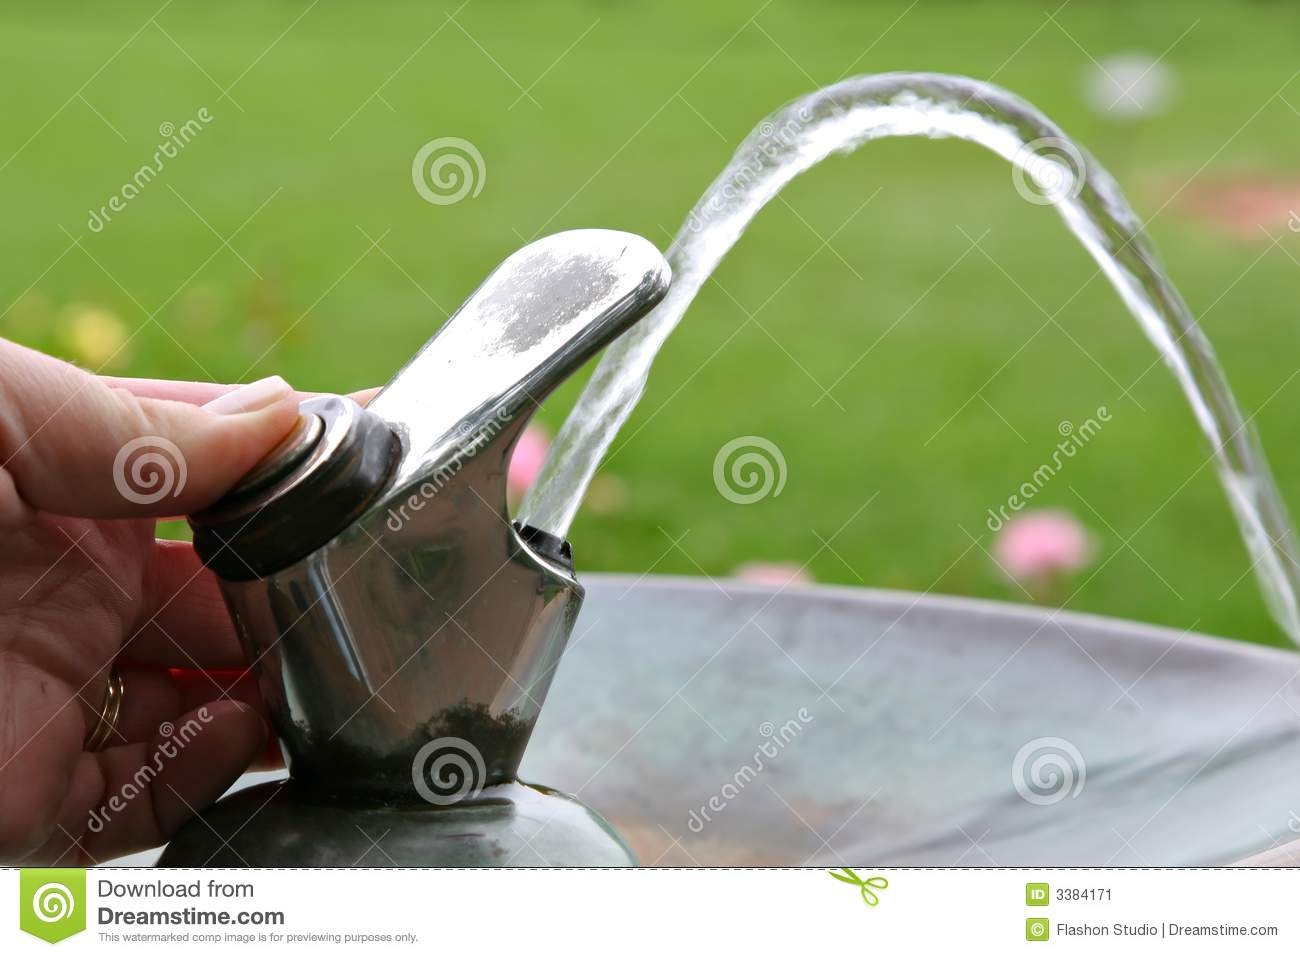 Ideas, outside faucet water fountain outside faucet water fountain outdoor faucet stock photos images pictures 2461 images 1300 x 957  .